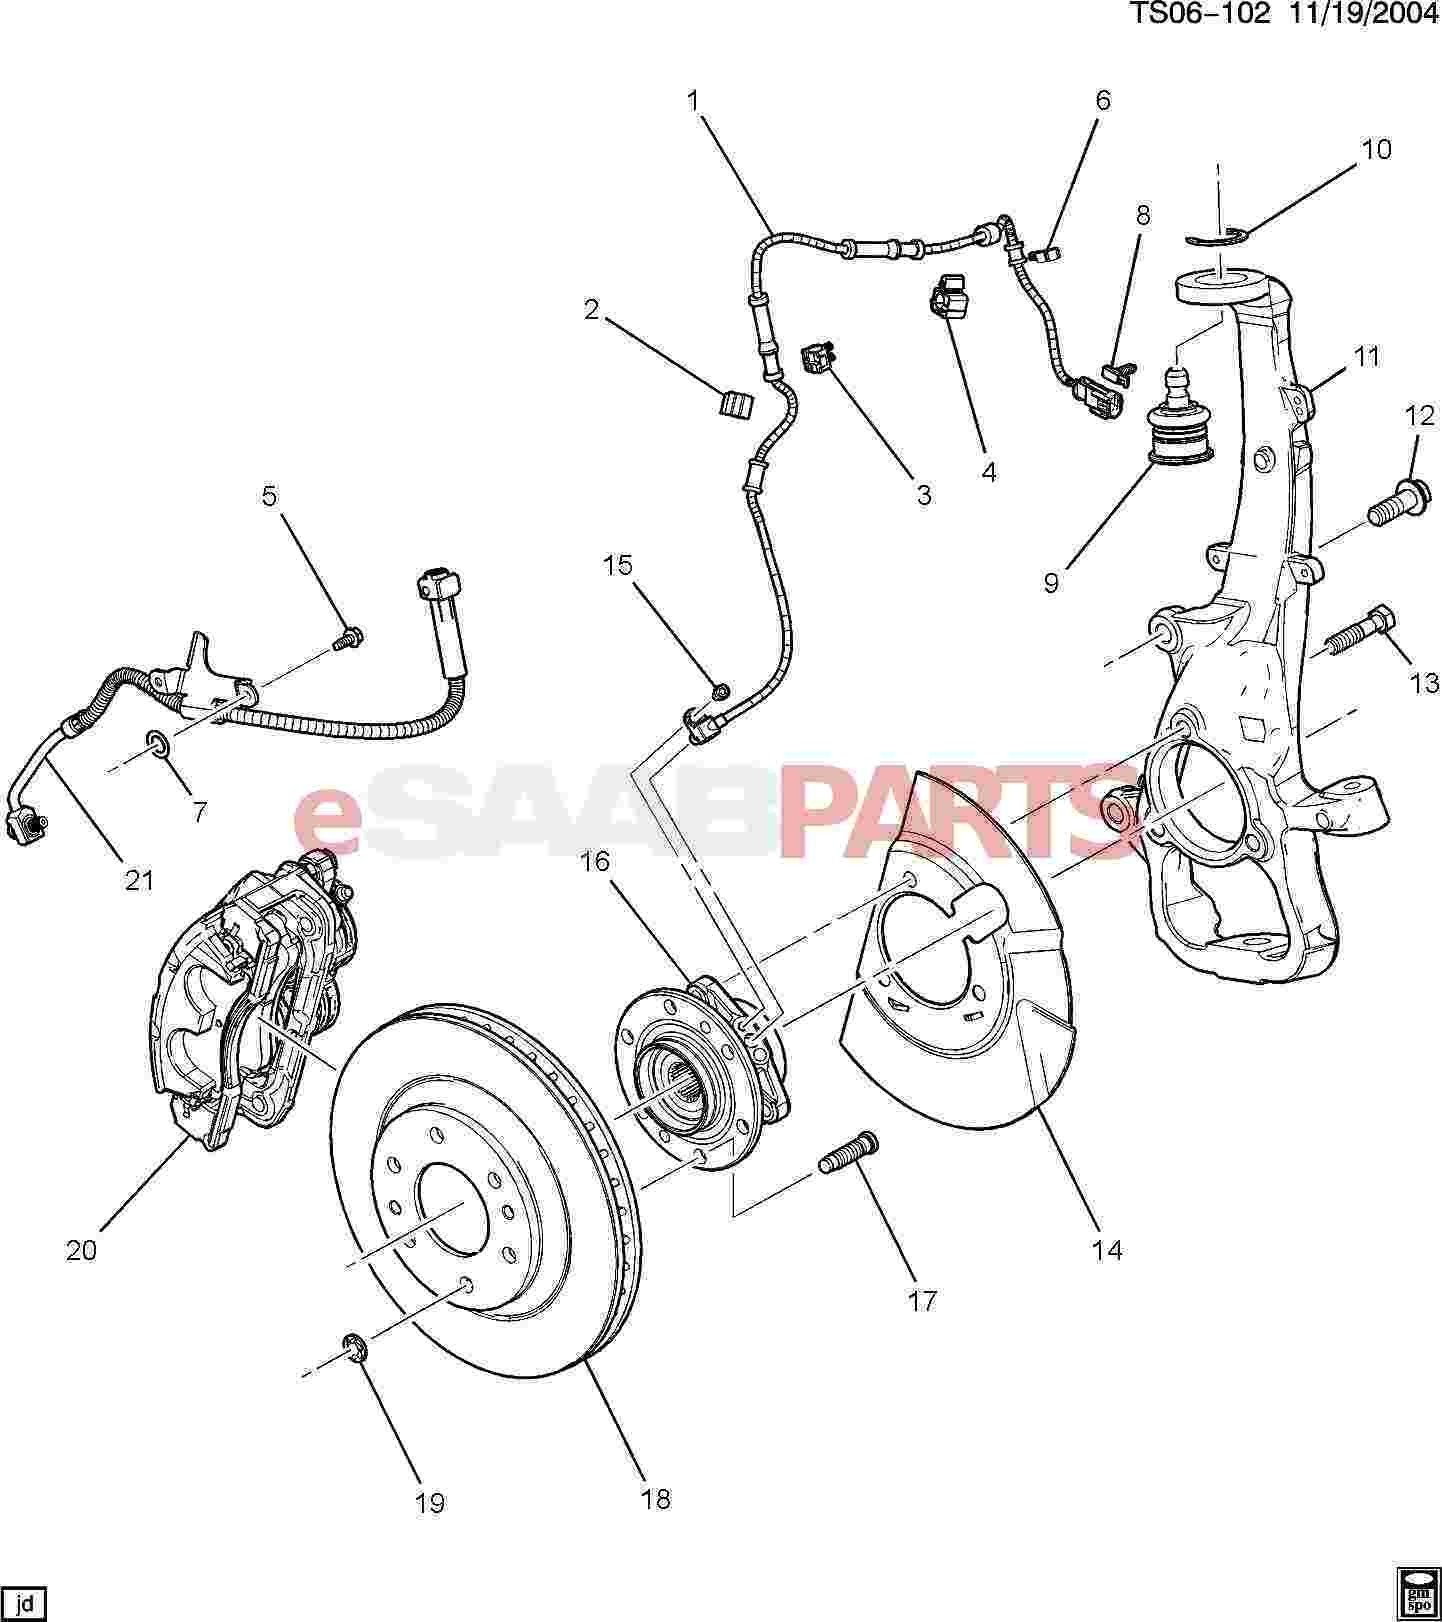 Brake Calipers Diagram Brake Caliper Parts Diagram Of Brake Calipers Diagram